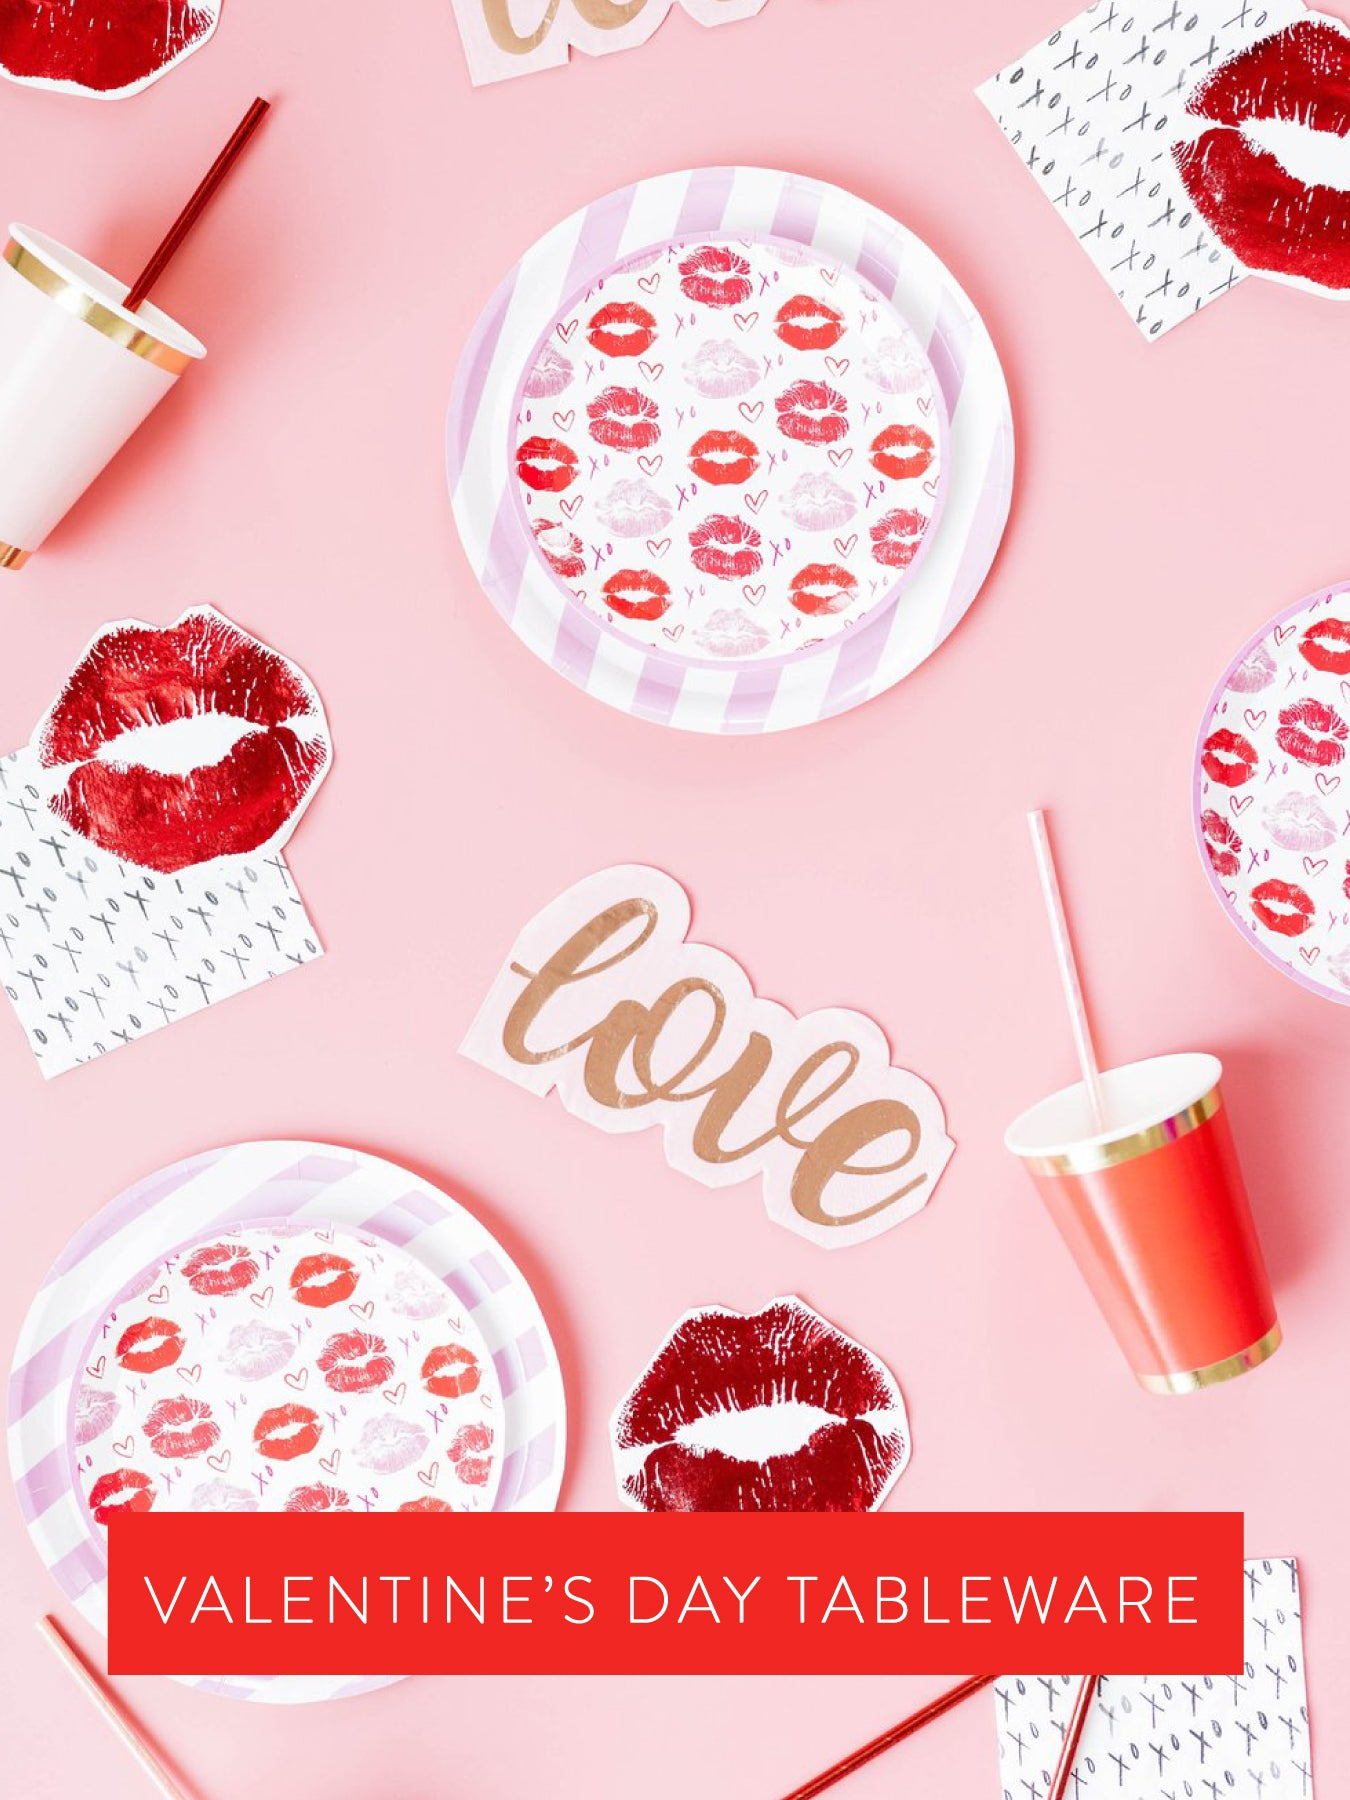 Shop for Valentine's Day tableware